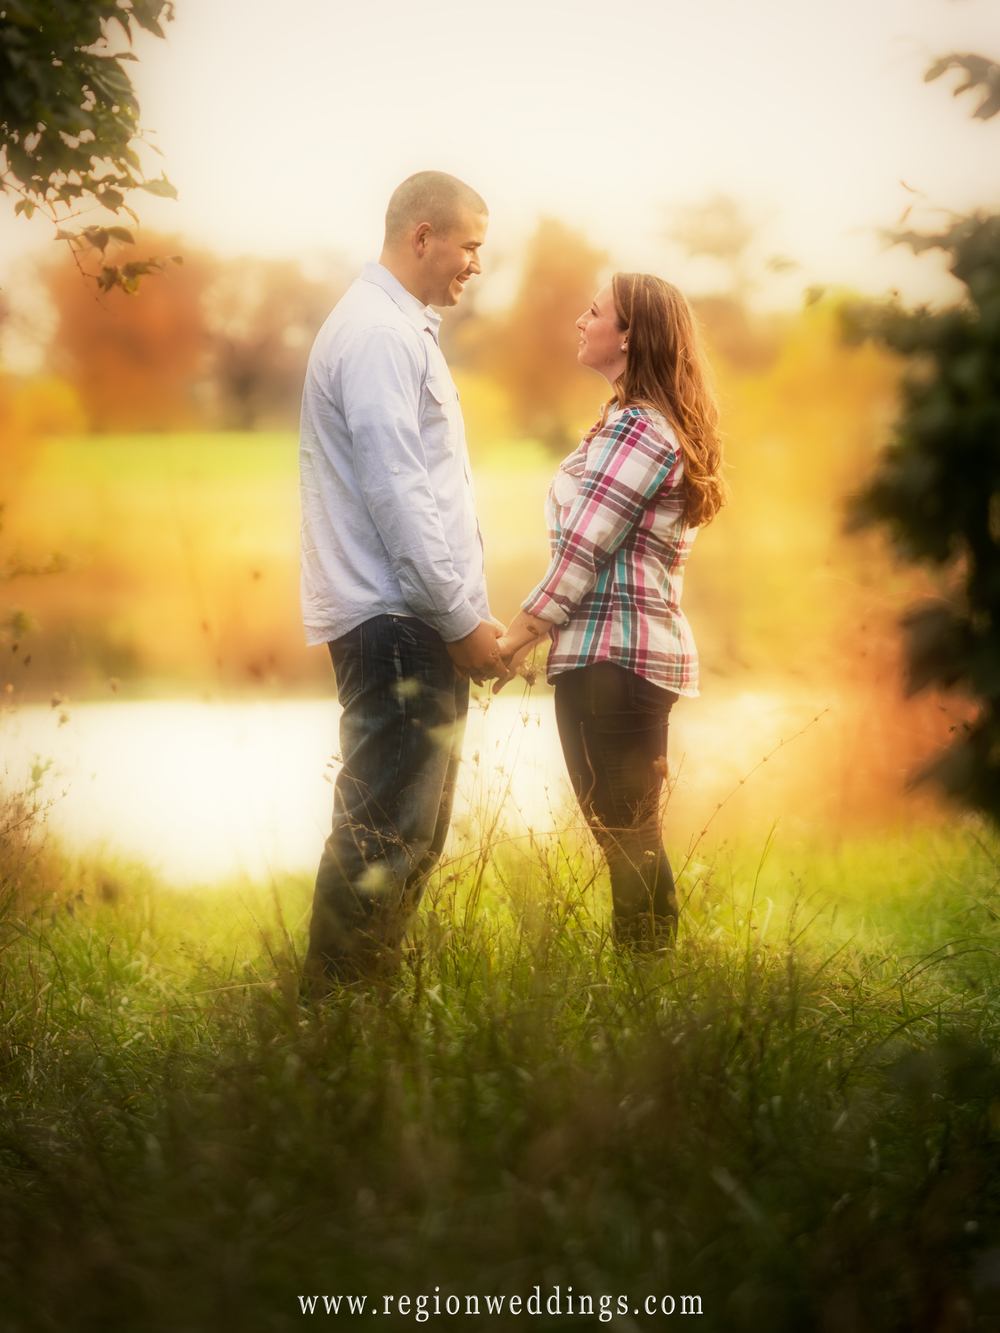 A romantic natural light engagement photo shot in soft focus.